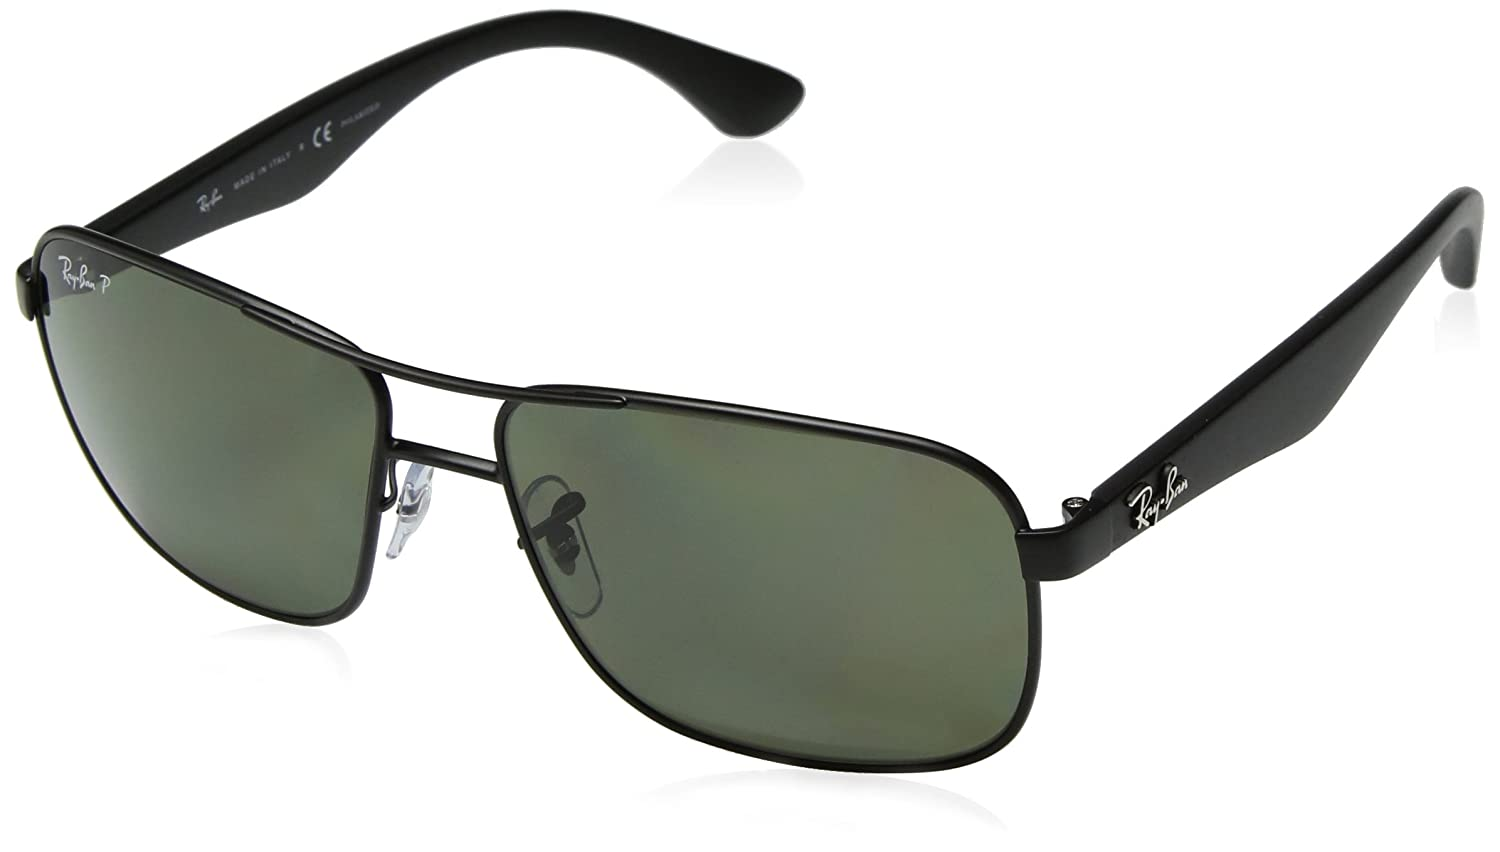 Ray-Ban Mens RB3515 Square Metal Sunglasses, Matte Black/Polarized Green, 59 mm